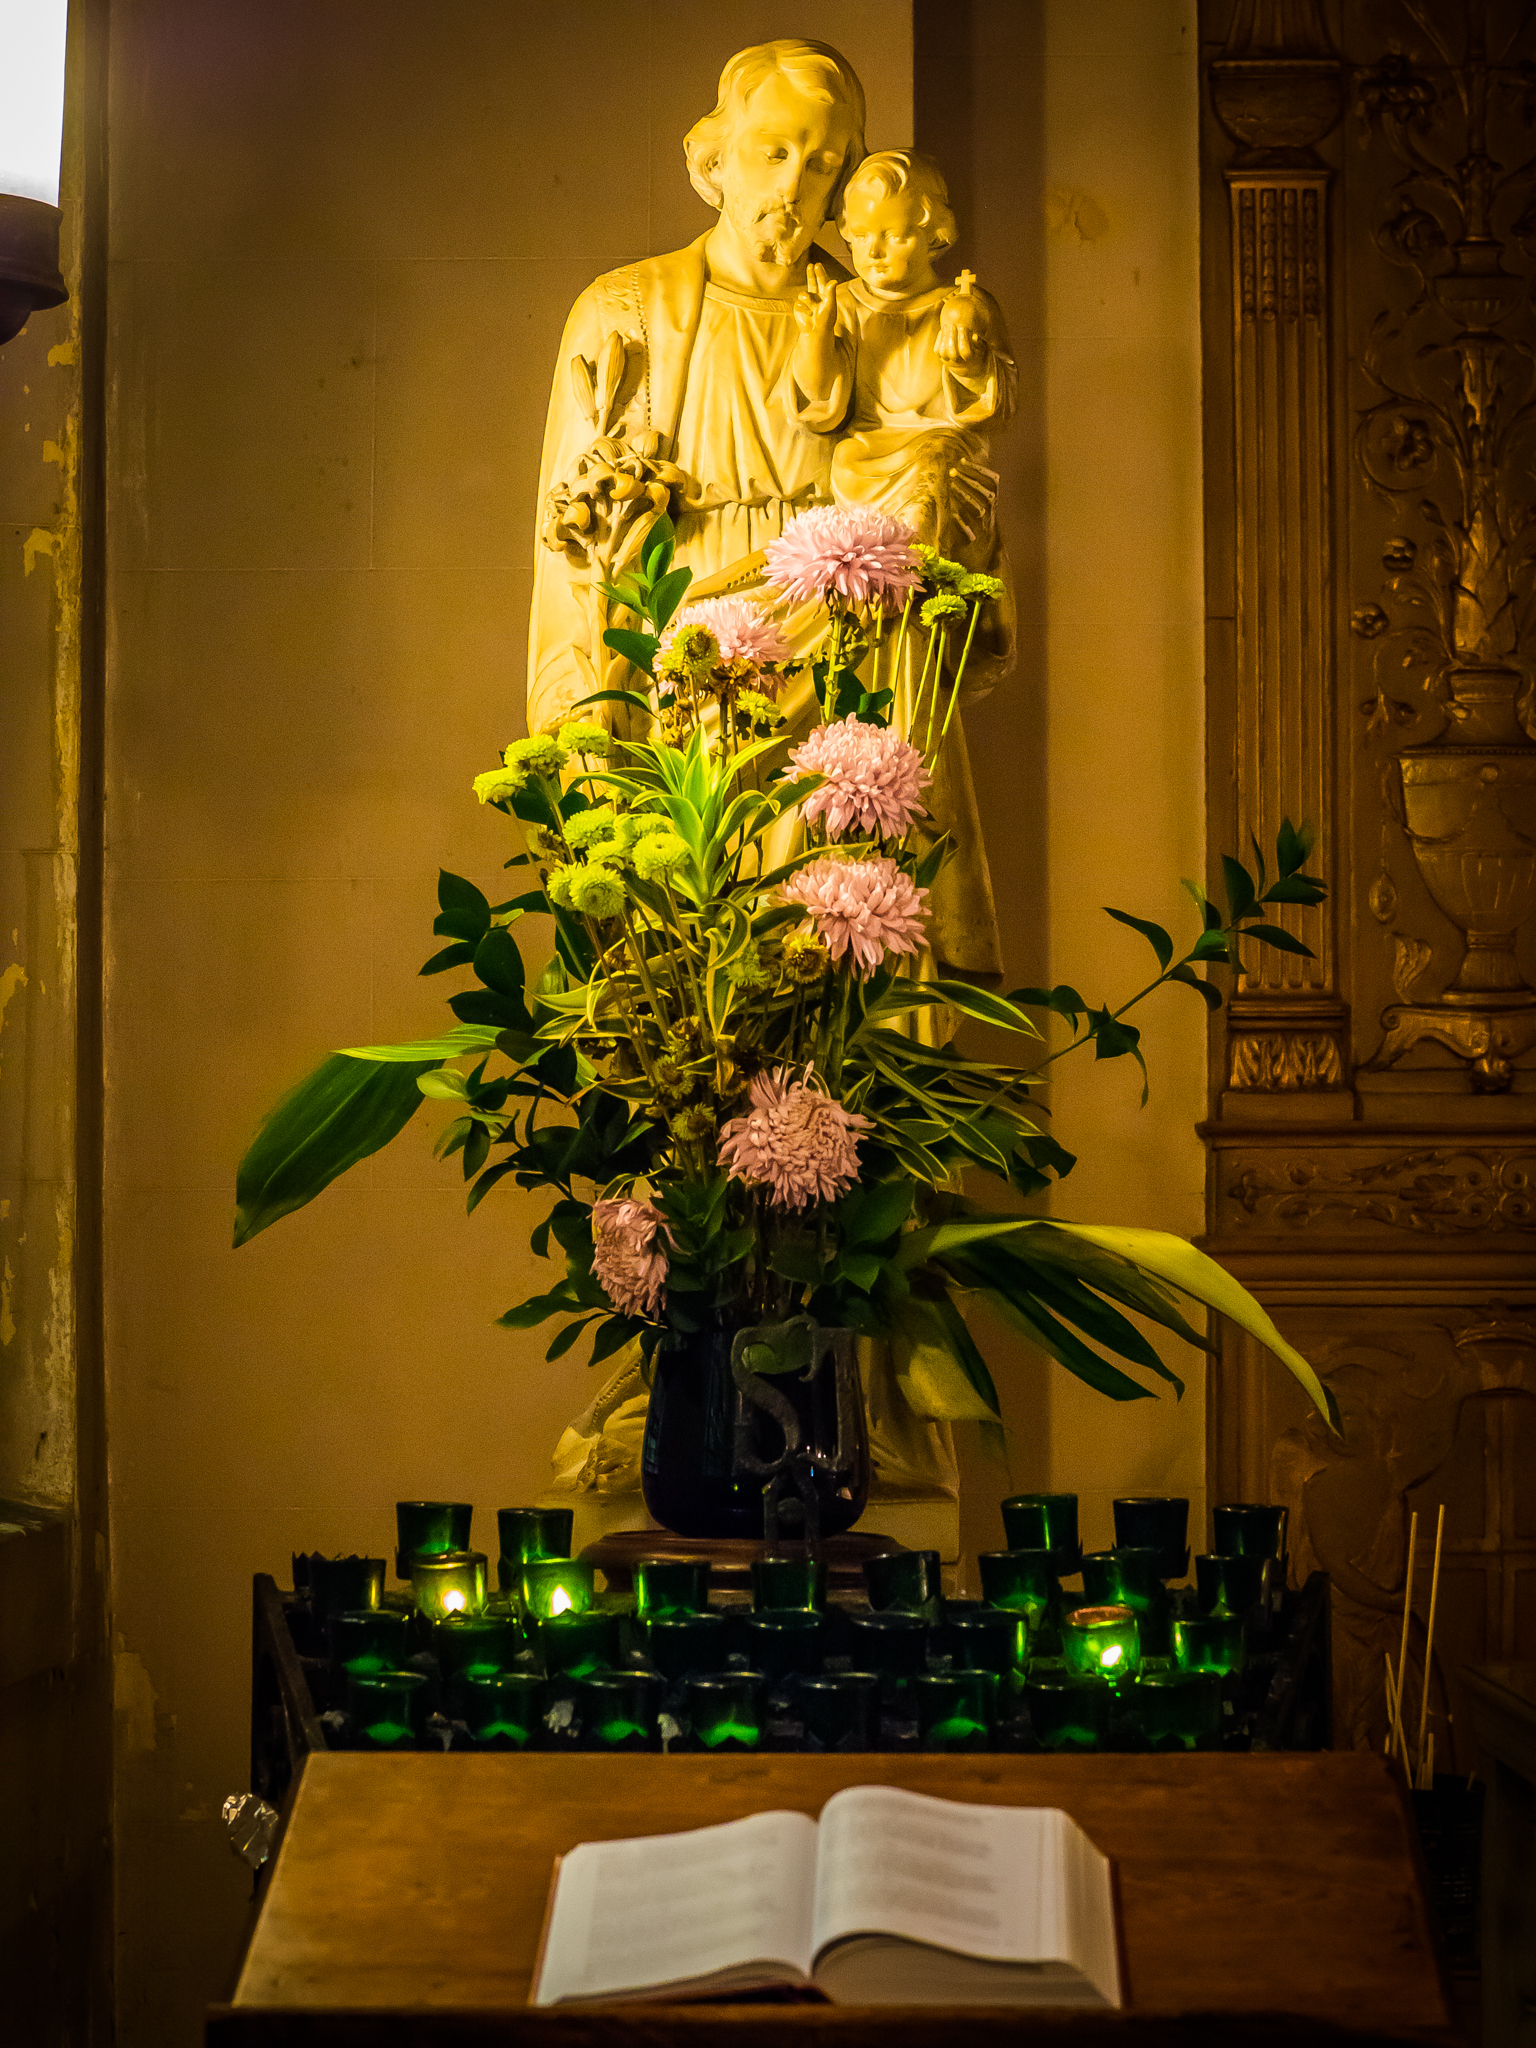 The statue of Saint Joseph holding the Christ Child originally was placed in the Lady Chapel.  Photo by Ricardo Gomez